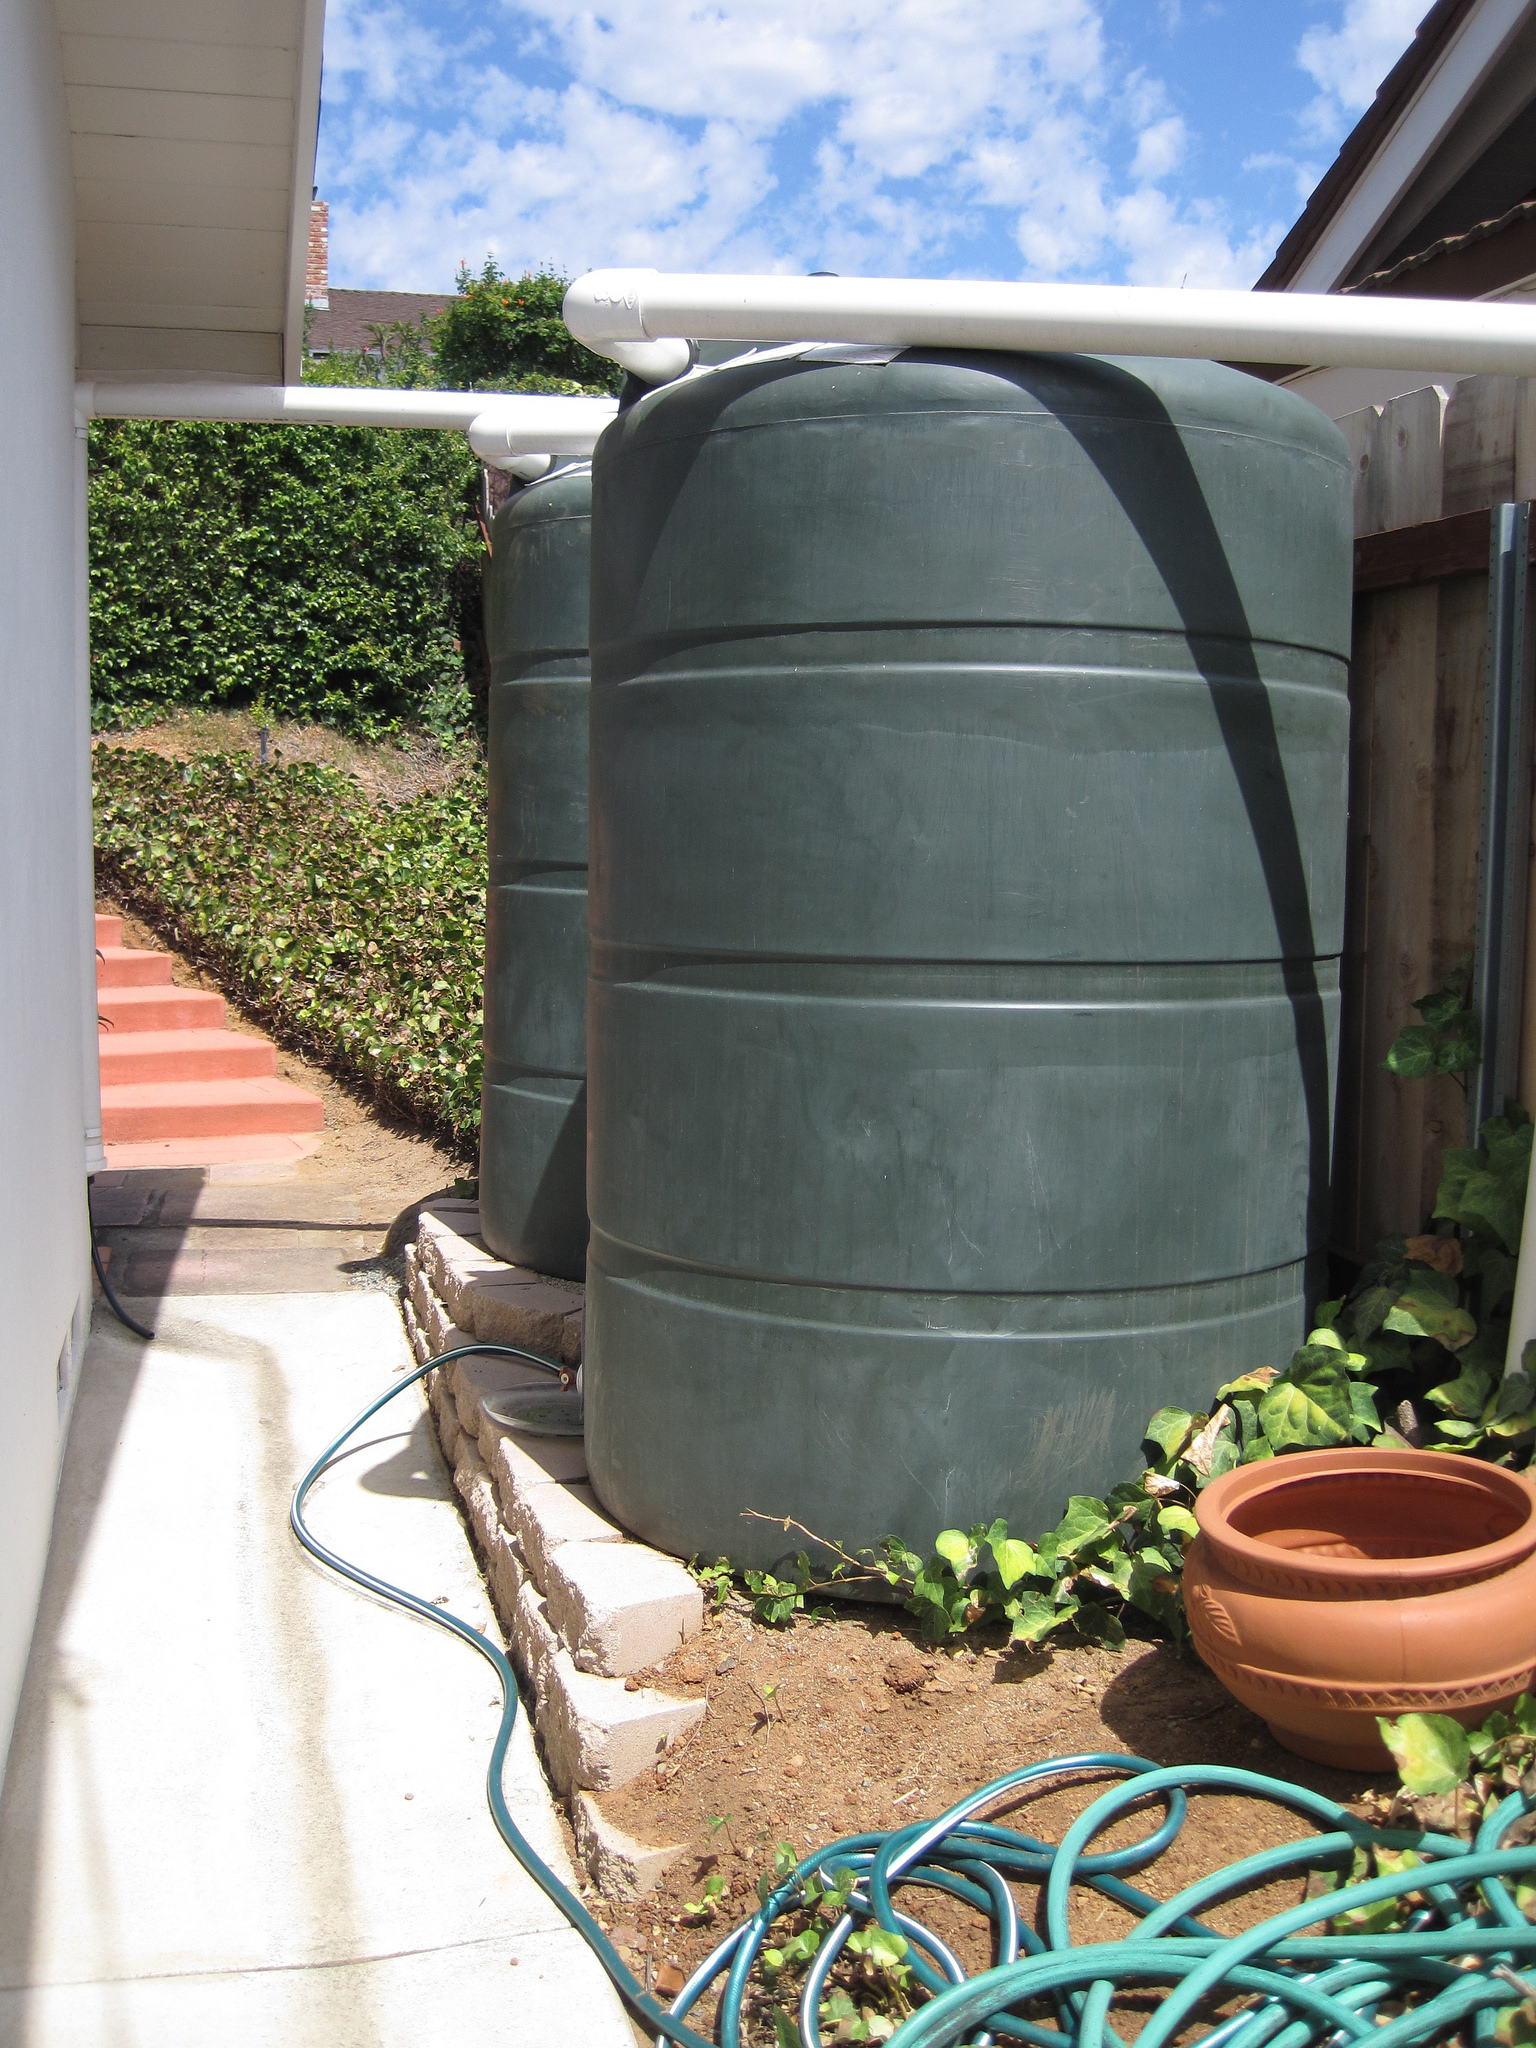 2 x 500 gallon tanks for a small side yard.